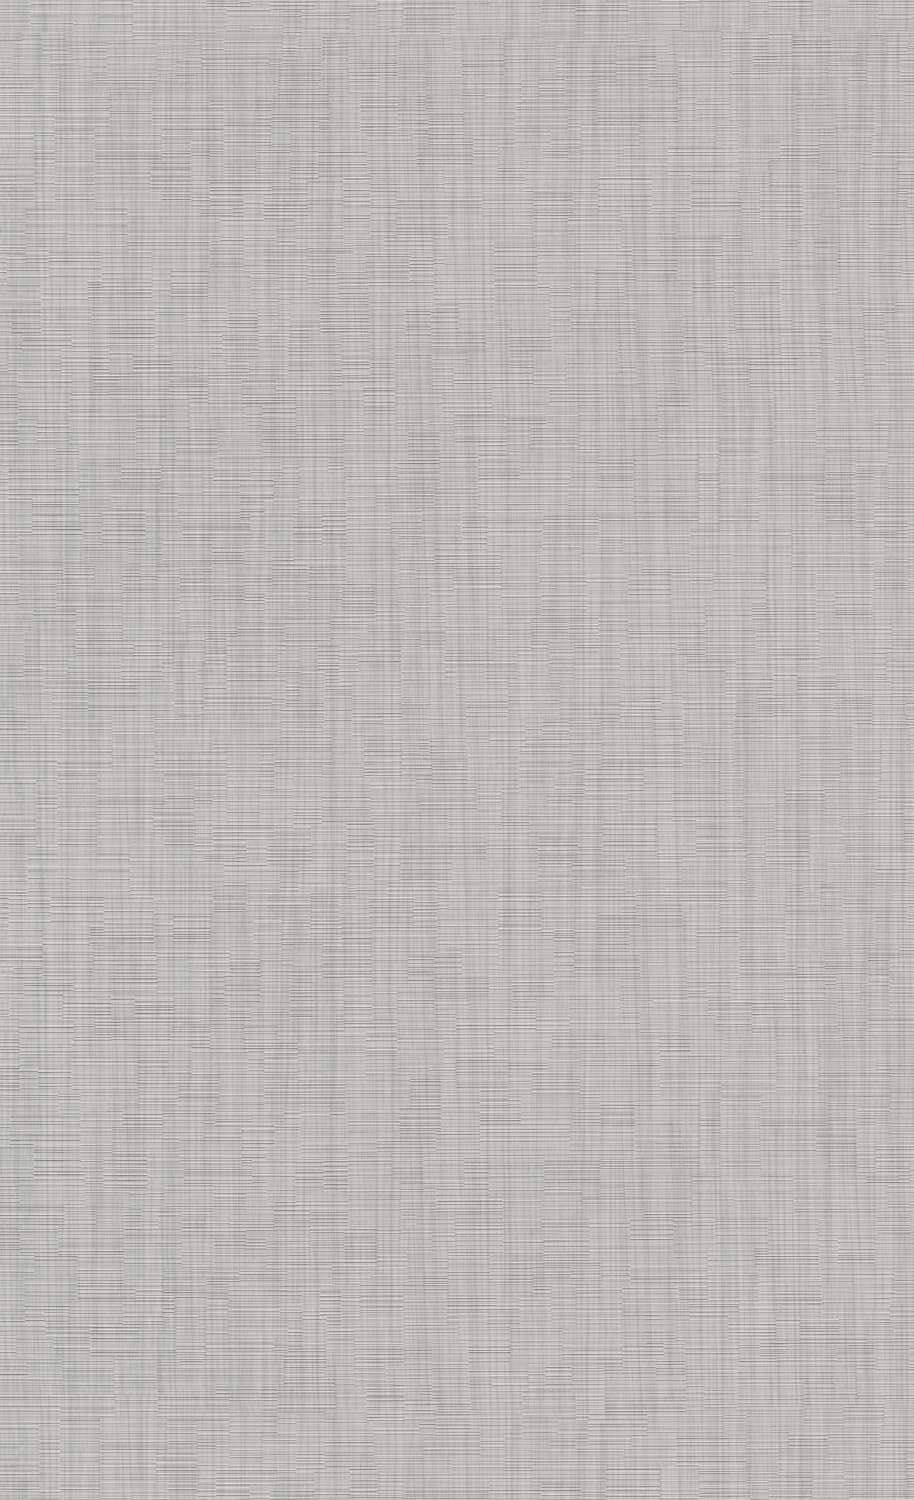 Cool Gray Rustic Wallpaper C7292  | Vinyl Contract Wallcovering